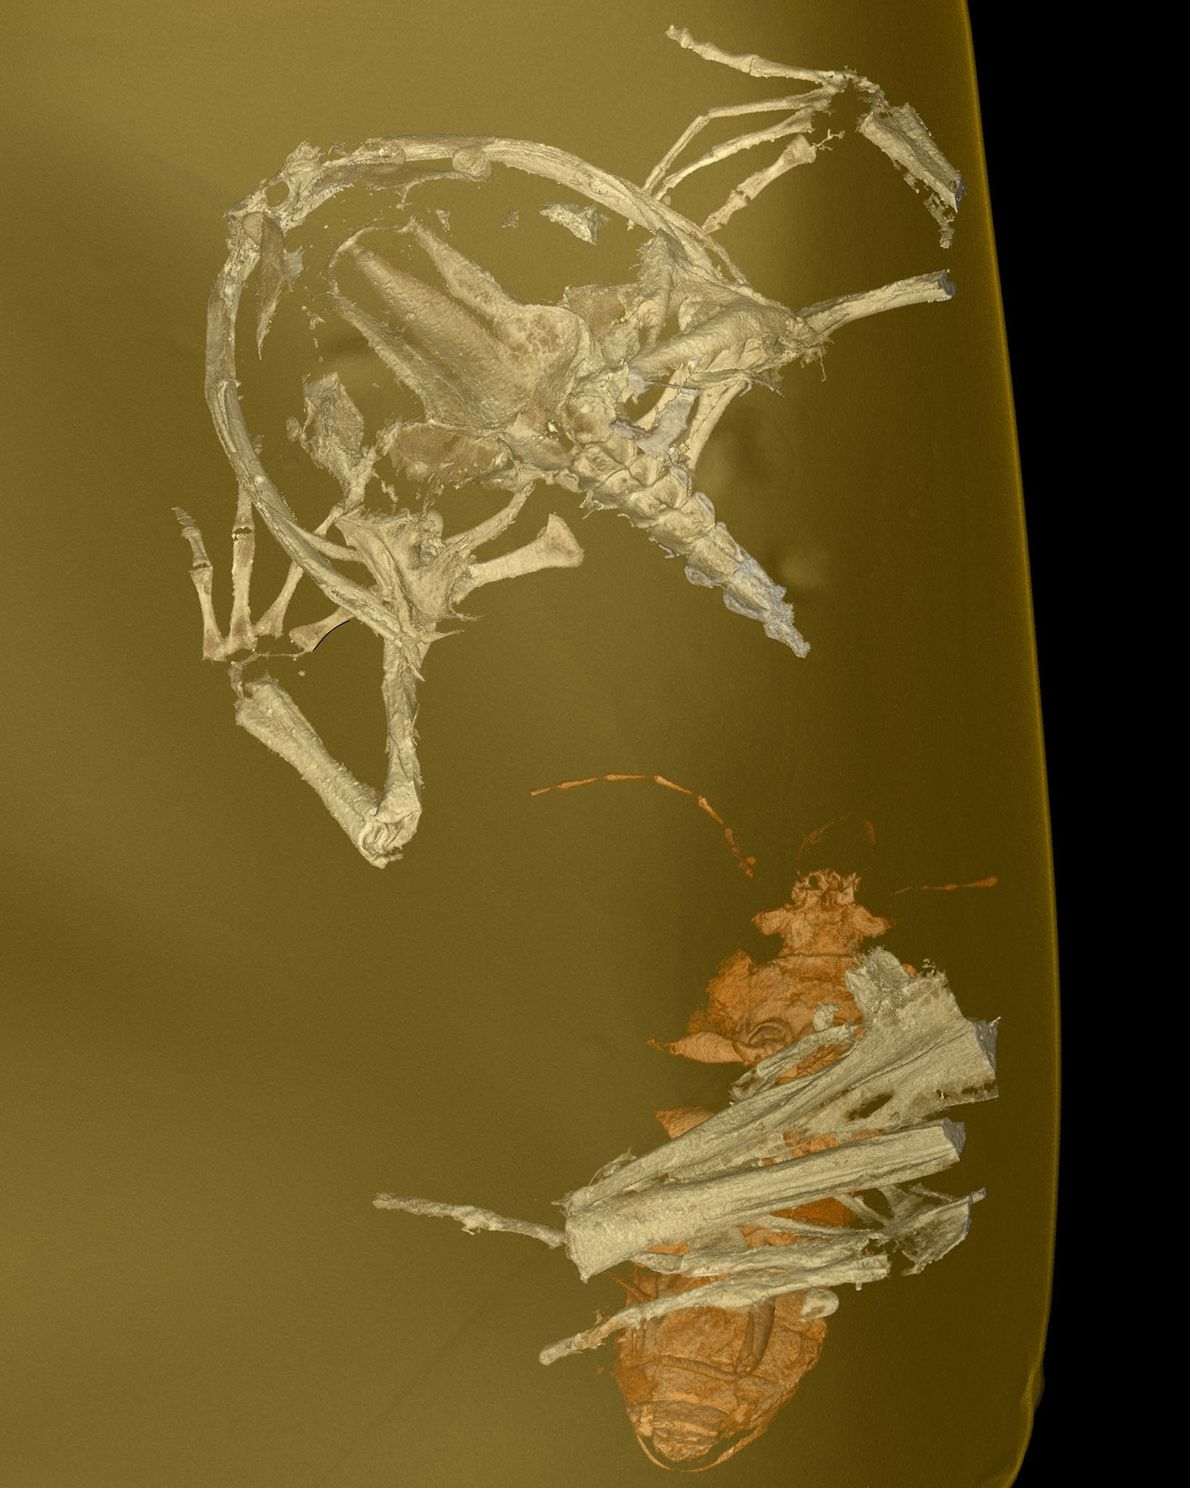 3-D scans also show fine detail in the Electrorana fossil frog.